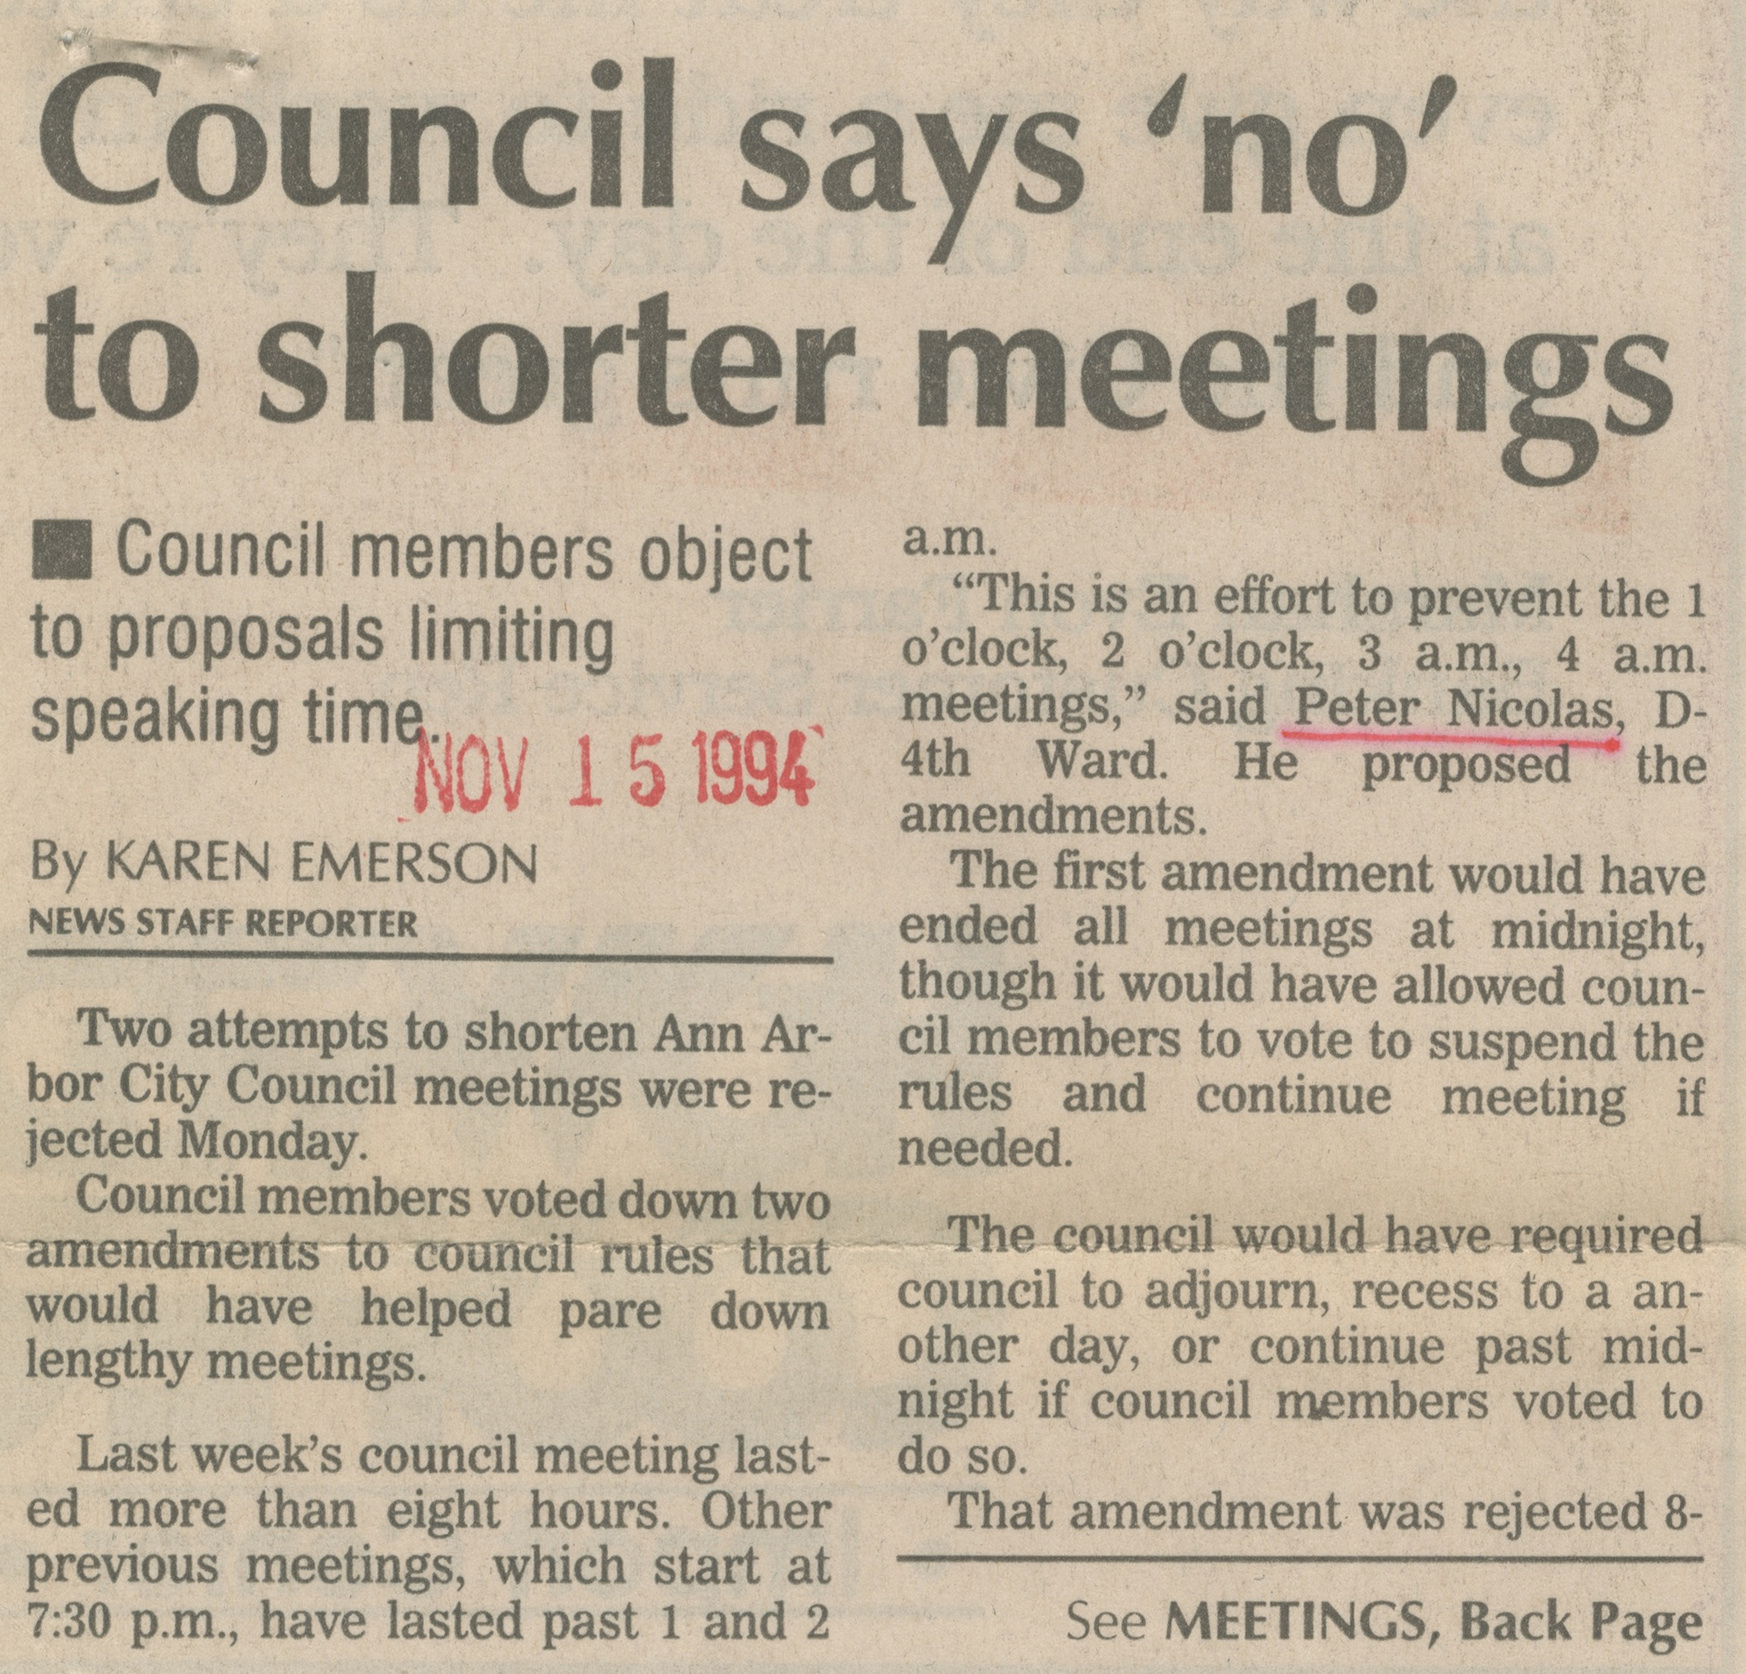 Council Says 'No' To Shorter Meetings image